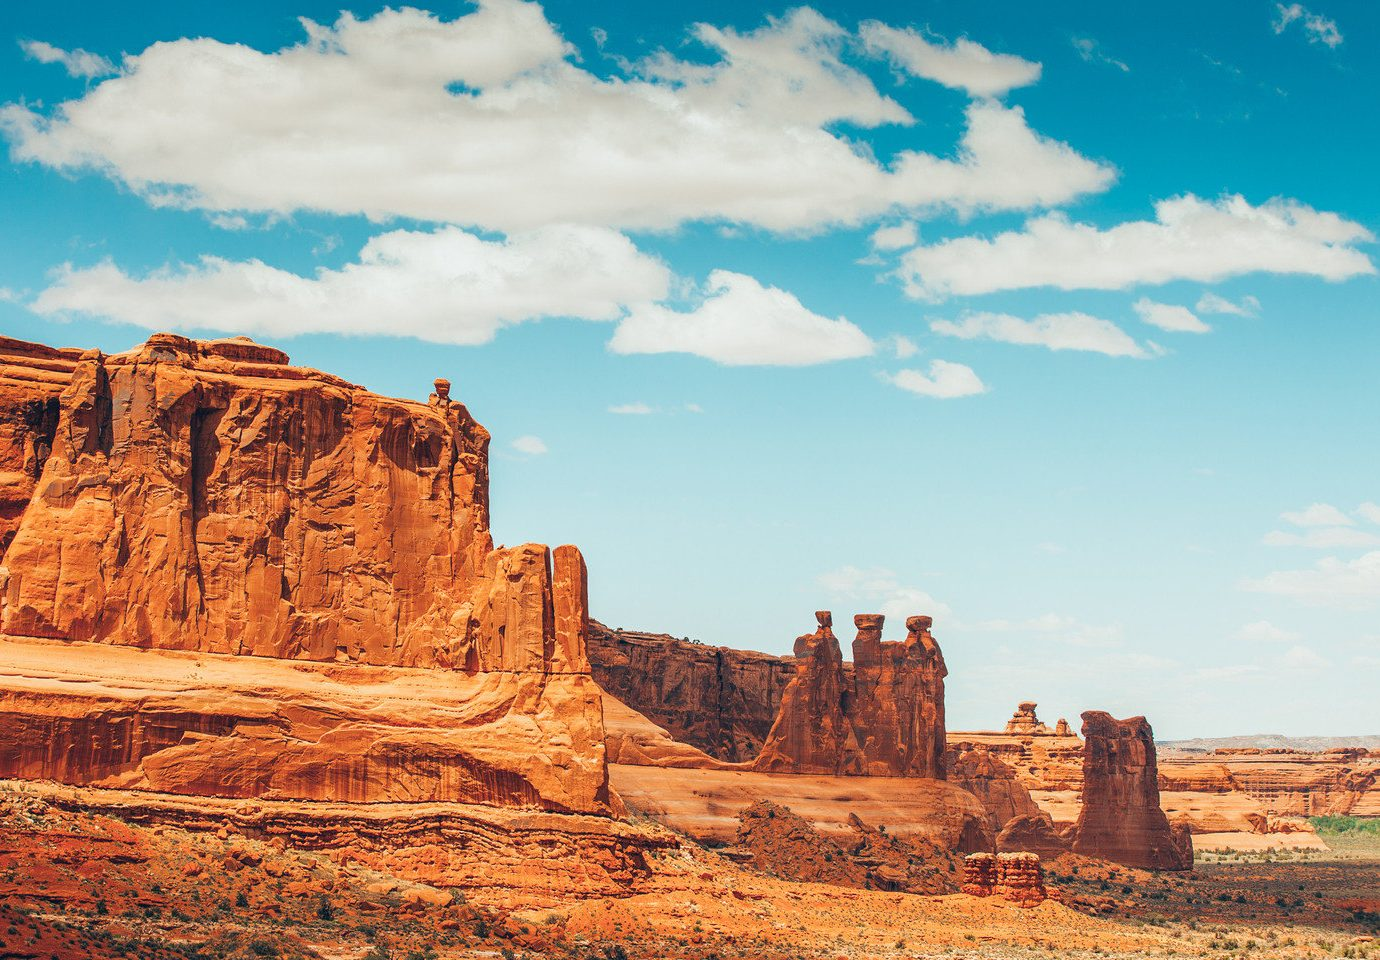 National Parks Outdoors + Adventure Trip Ideas valley canyon sky outdoor Nature butte landform geographical feature rock badlands landscape arch cliff plateau formation wadi terrain geology